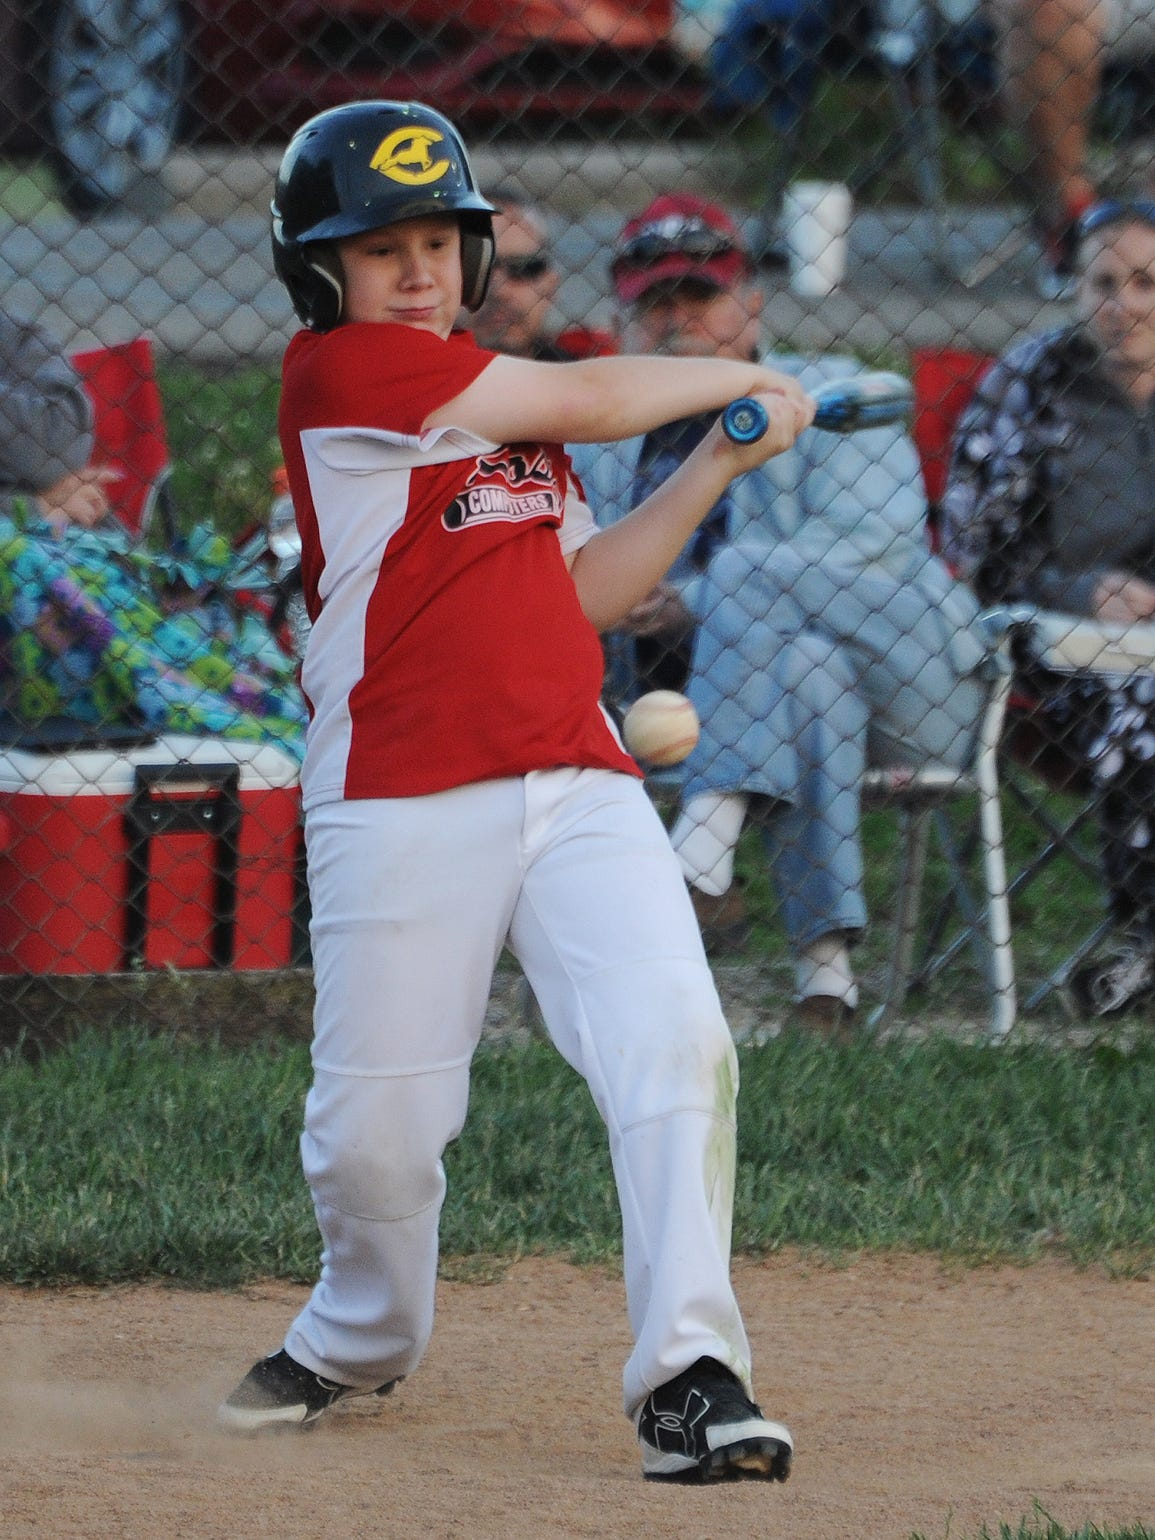 TJ Barr hits the ball during a game Tuesday, June 7,